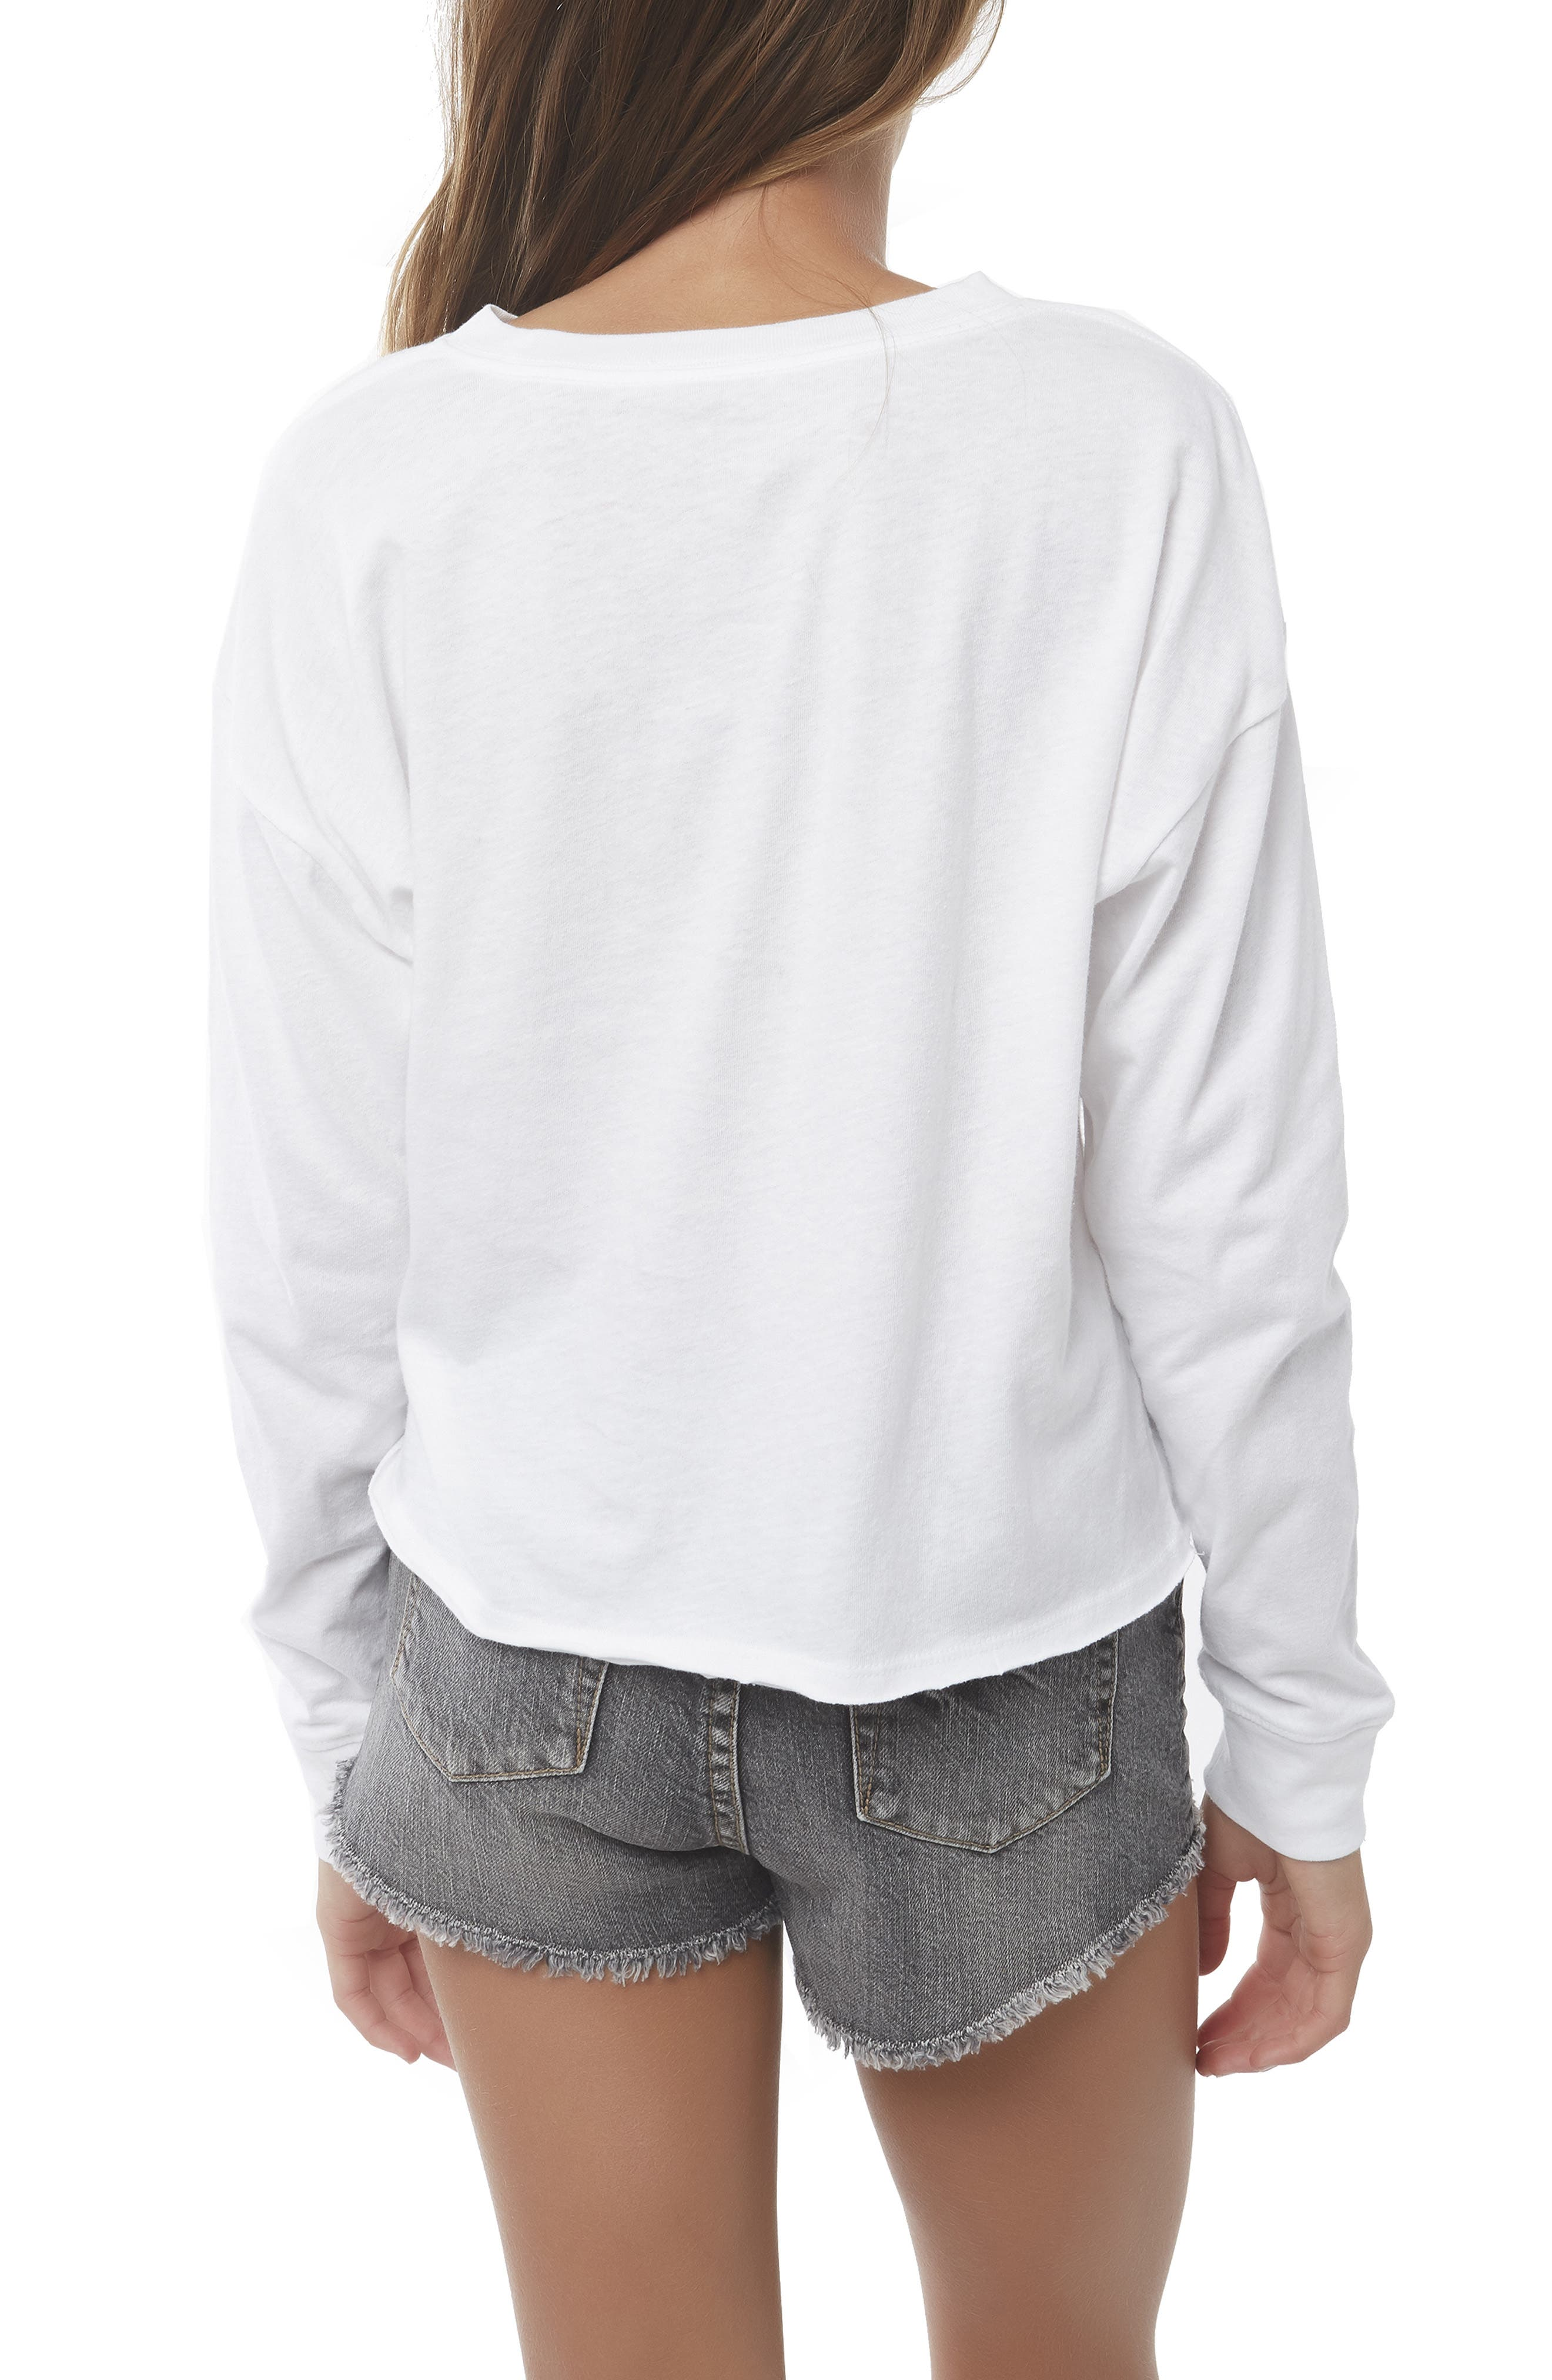 O'NEILL, Boardwalk Graphic Tee, Alternate thumbnail 3, color, 100